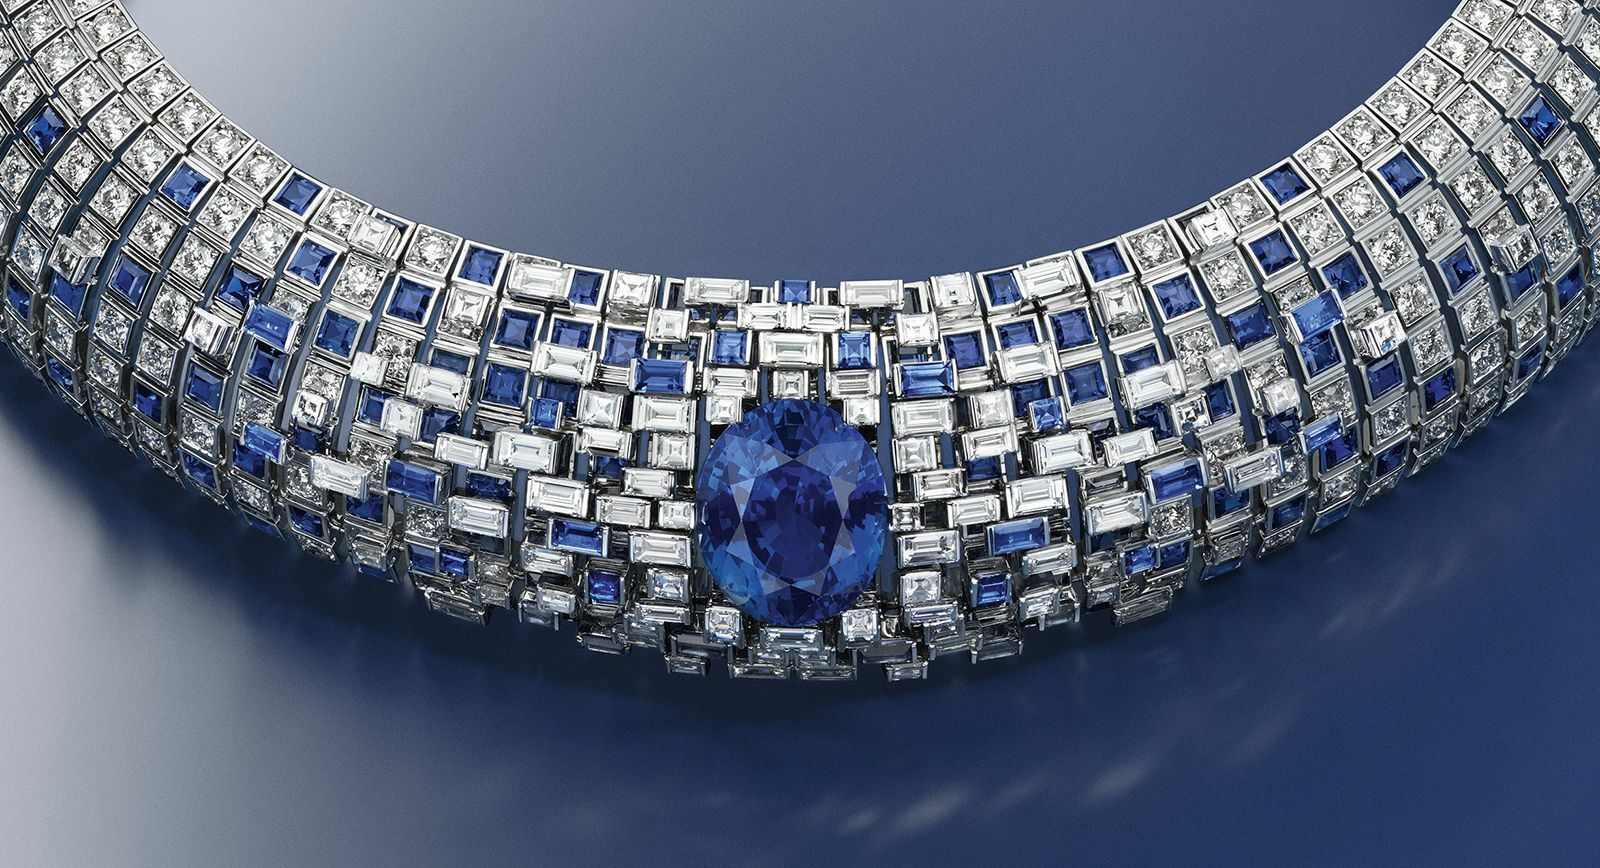 Louis Vuitton Stellar Times Lune sapphire and diamond high jewellery necklace